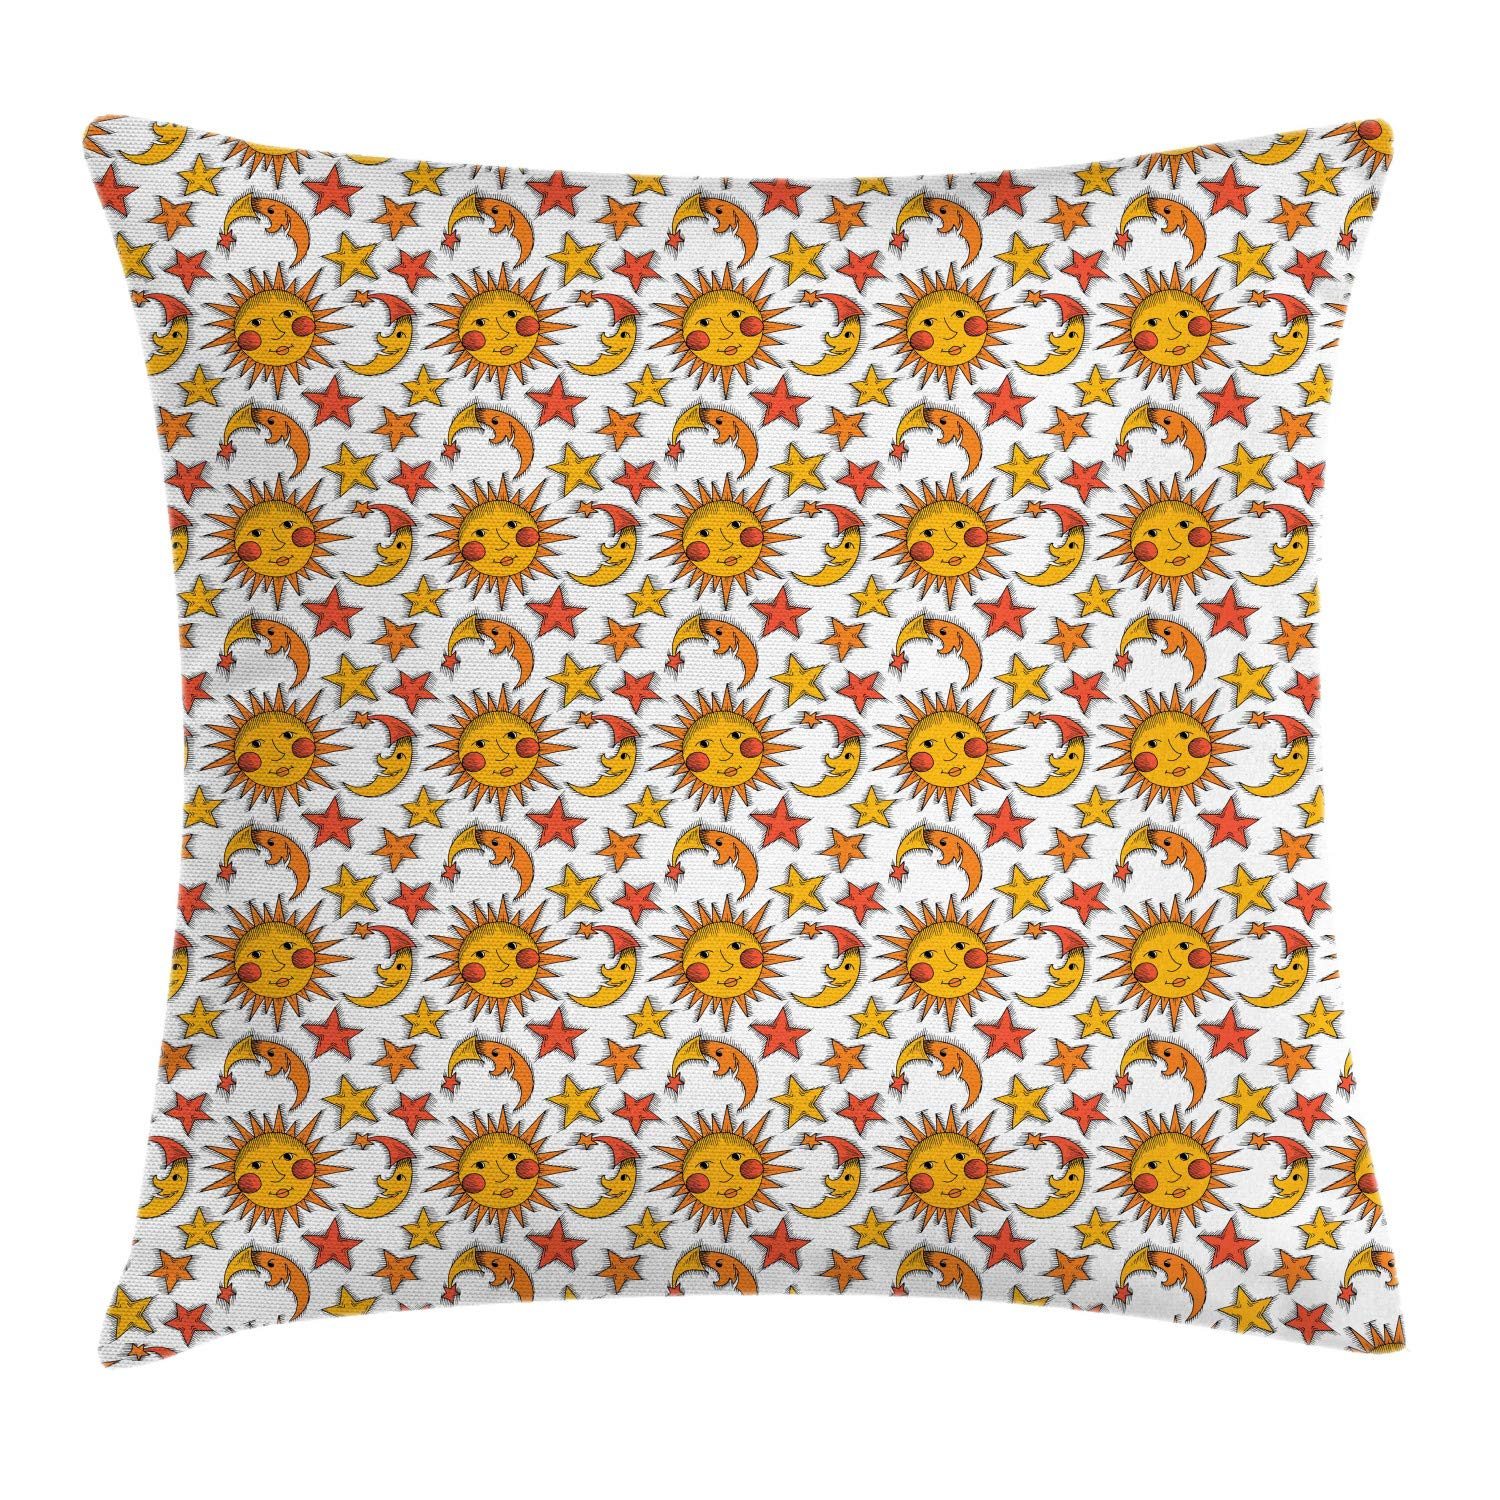 Lunarable Sun Throw Pillow Cushion Cover, Nursery Themed Repetitive Pattern with Sun Moon and Stars, Decorative Square Accent Pillow Case, 28'' X 28'', Earth Yellow Orange Burnt Sienna White